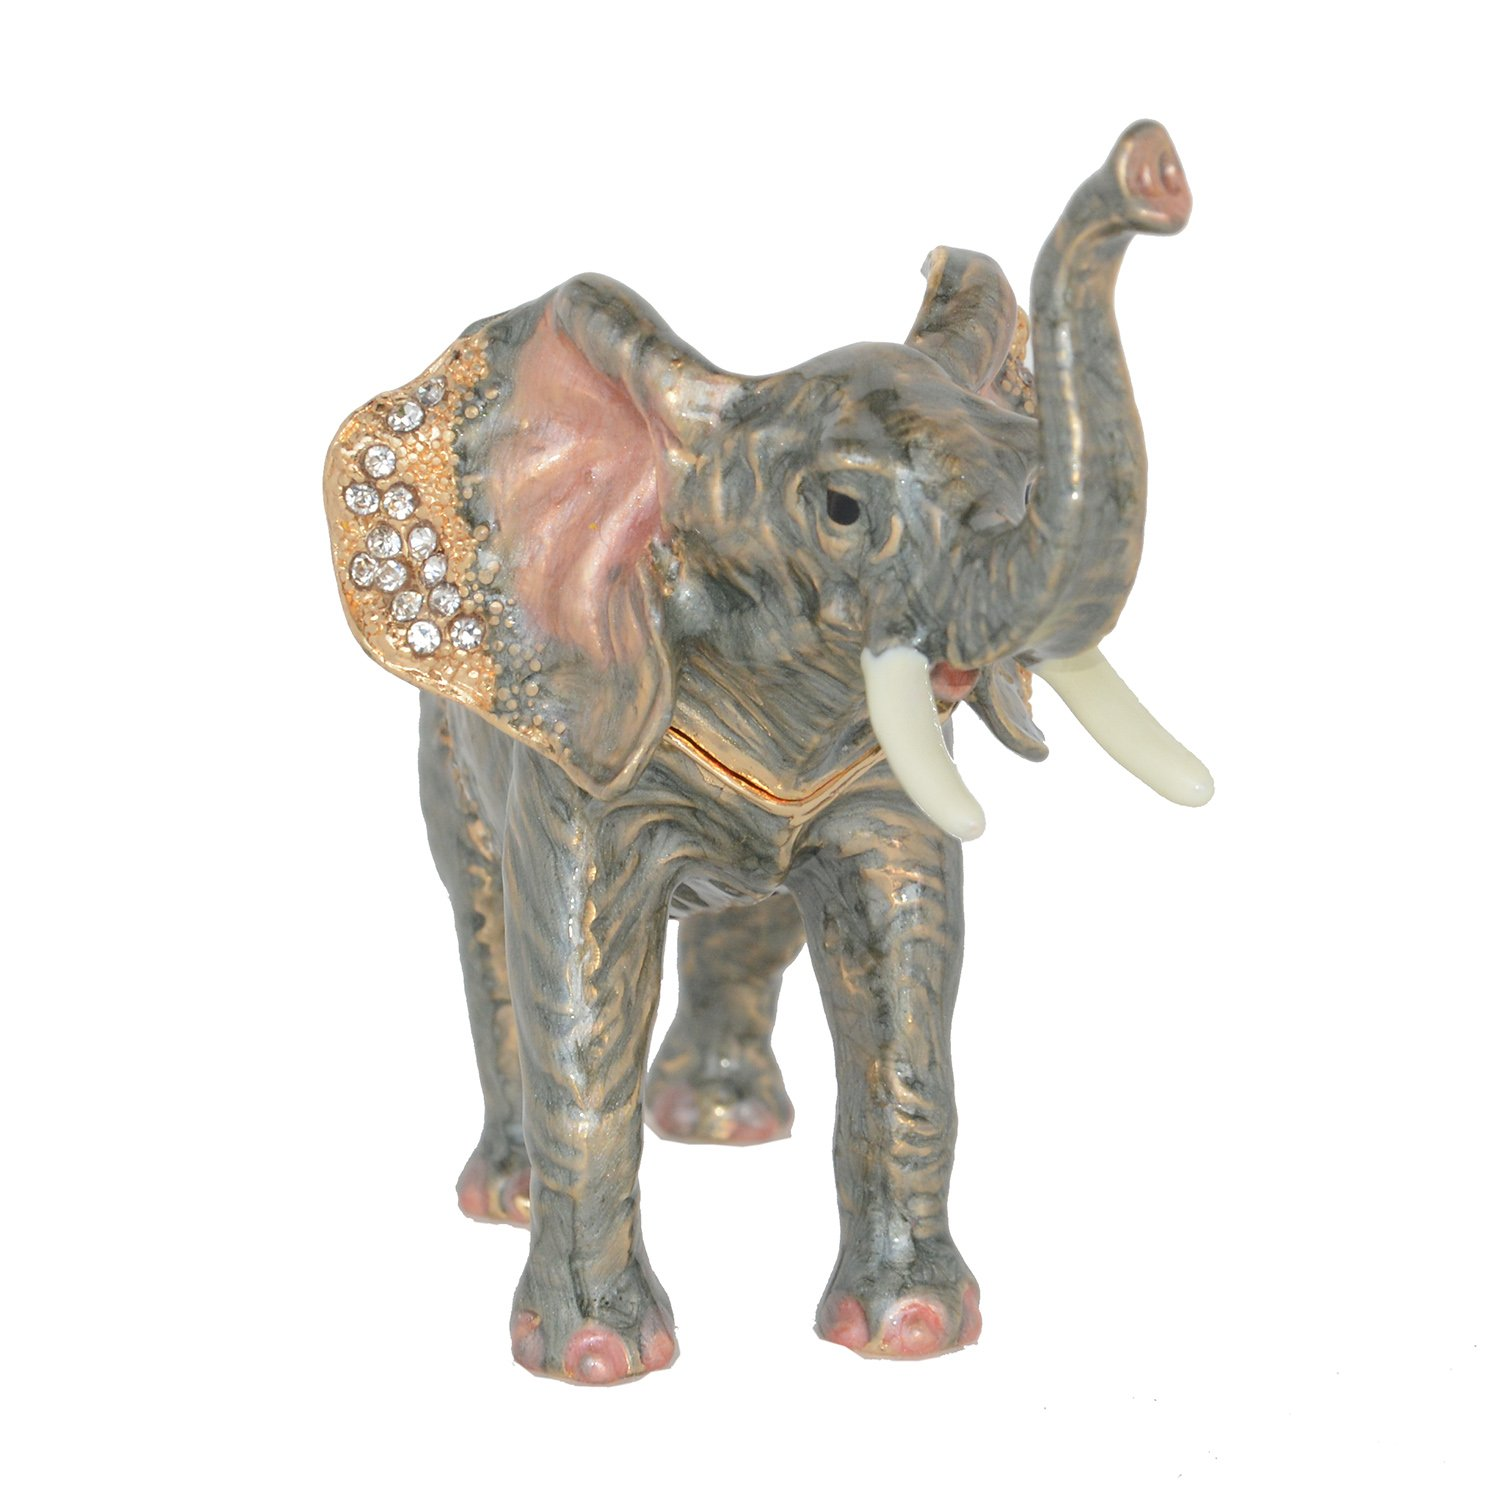 Minihouse Elephant Treasured Trinket Jewelry Ring Box Necklace Container Crystal Jeweled Collectible Gifts for Lovers (Grey) by Minihouse (Image #2)